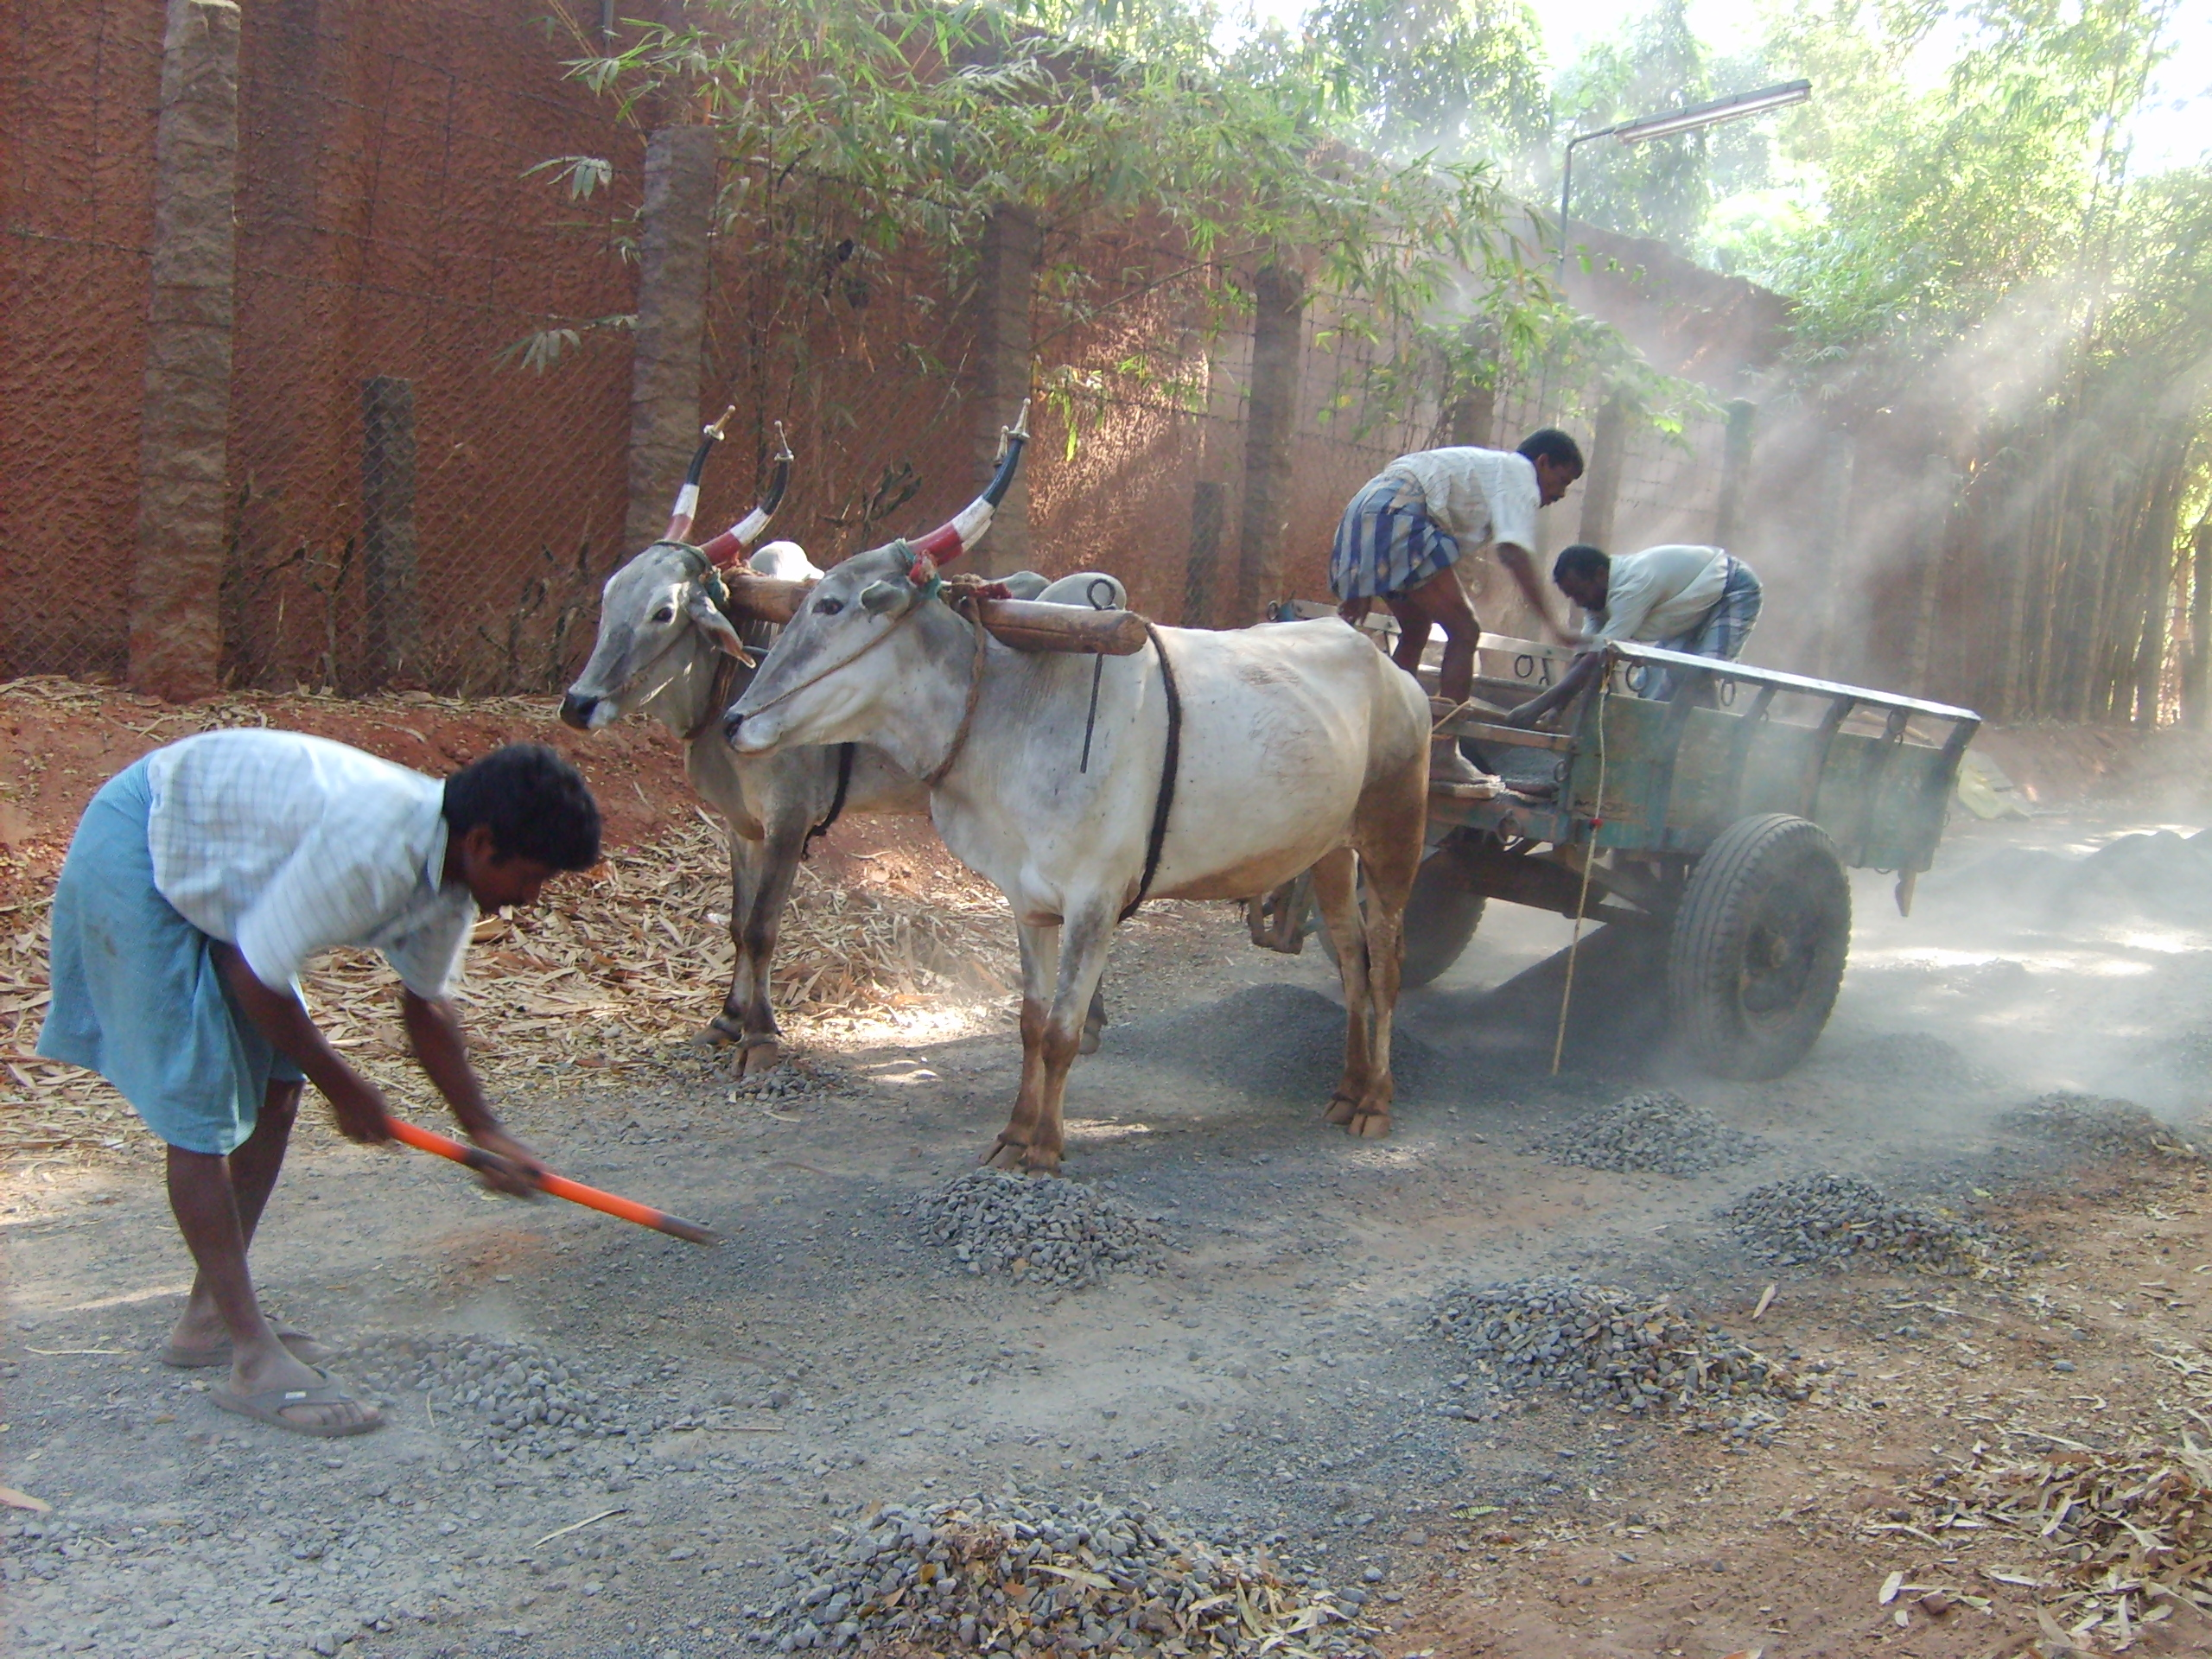 Road construction in Tamil Nadu